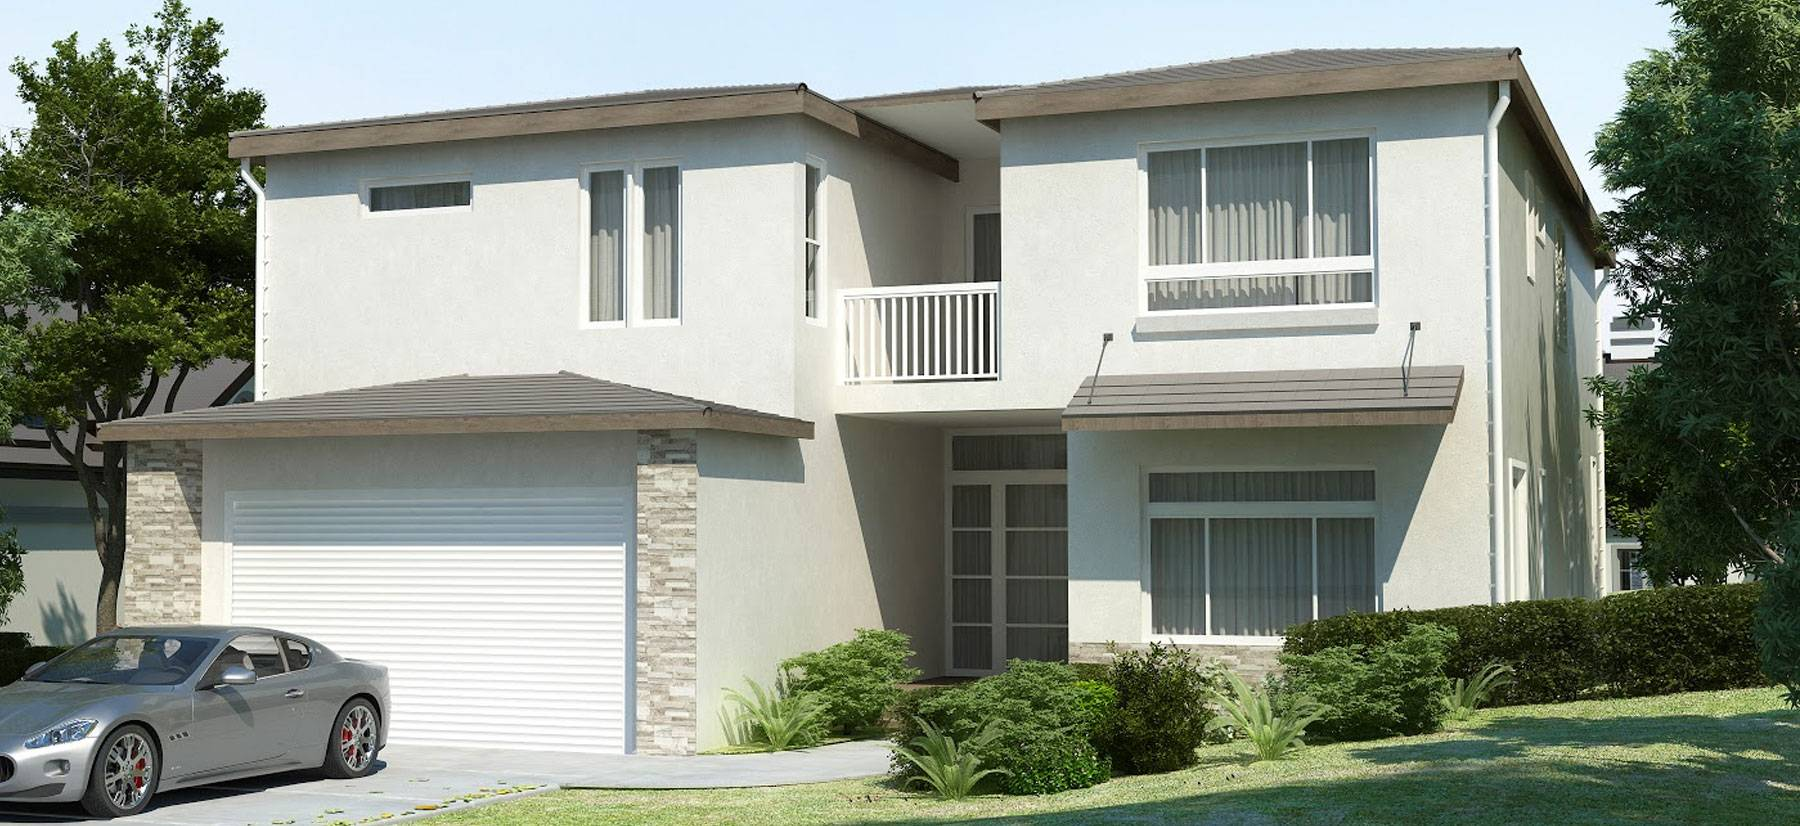 sample single-family housing project by the City government of Fresno